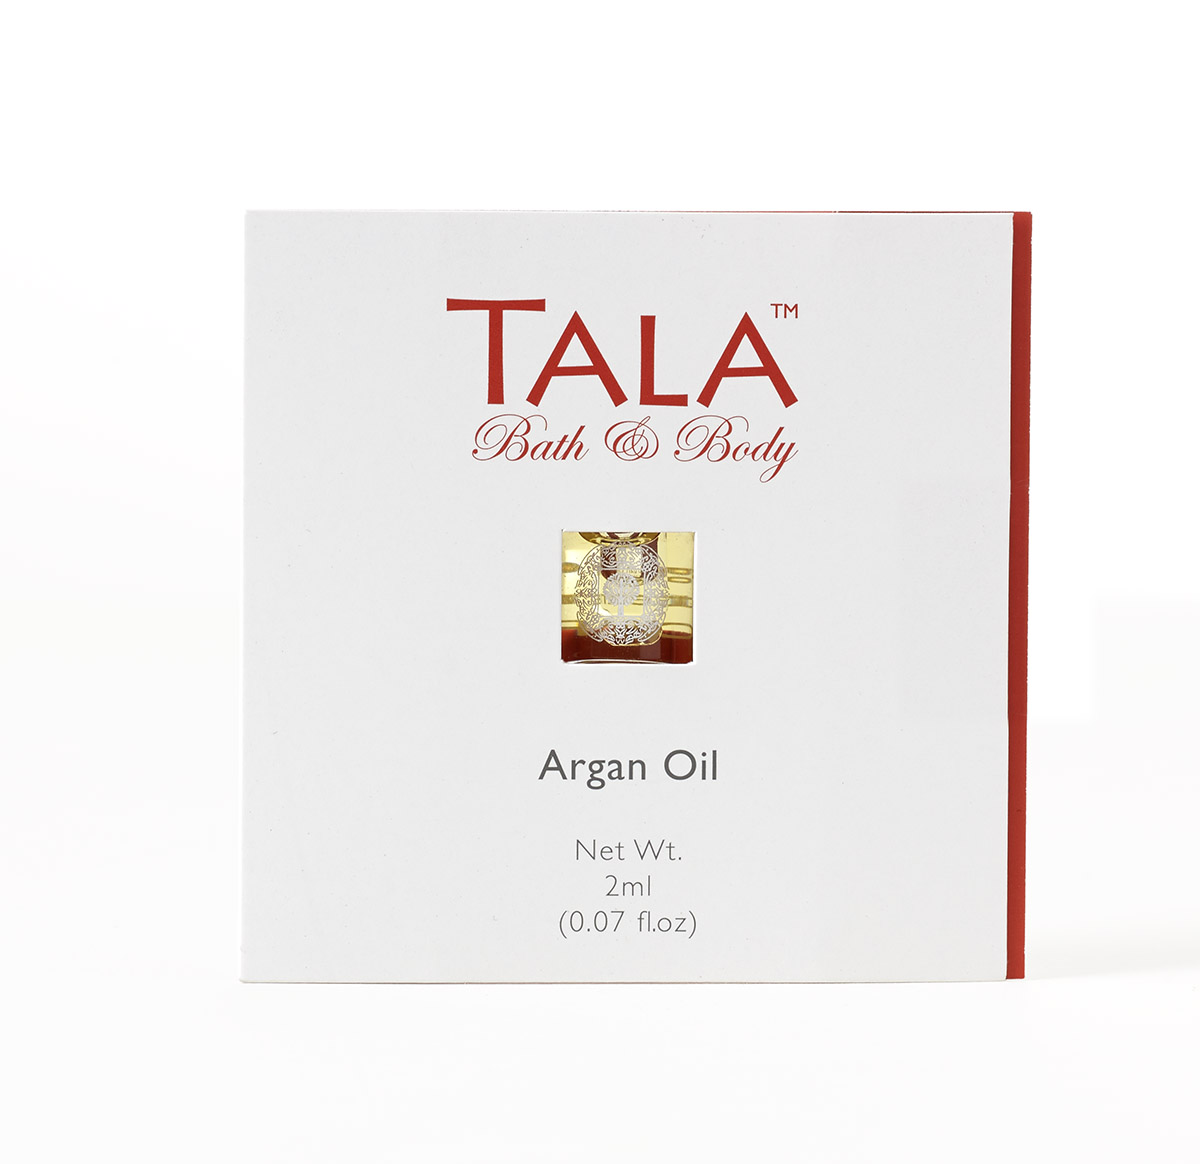 MrSteam now offers a sample size bottle of its exquisite TALA Argan Oil for authorized dealers to share with customers.